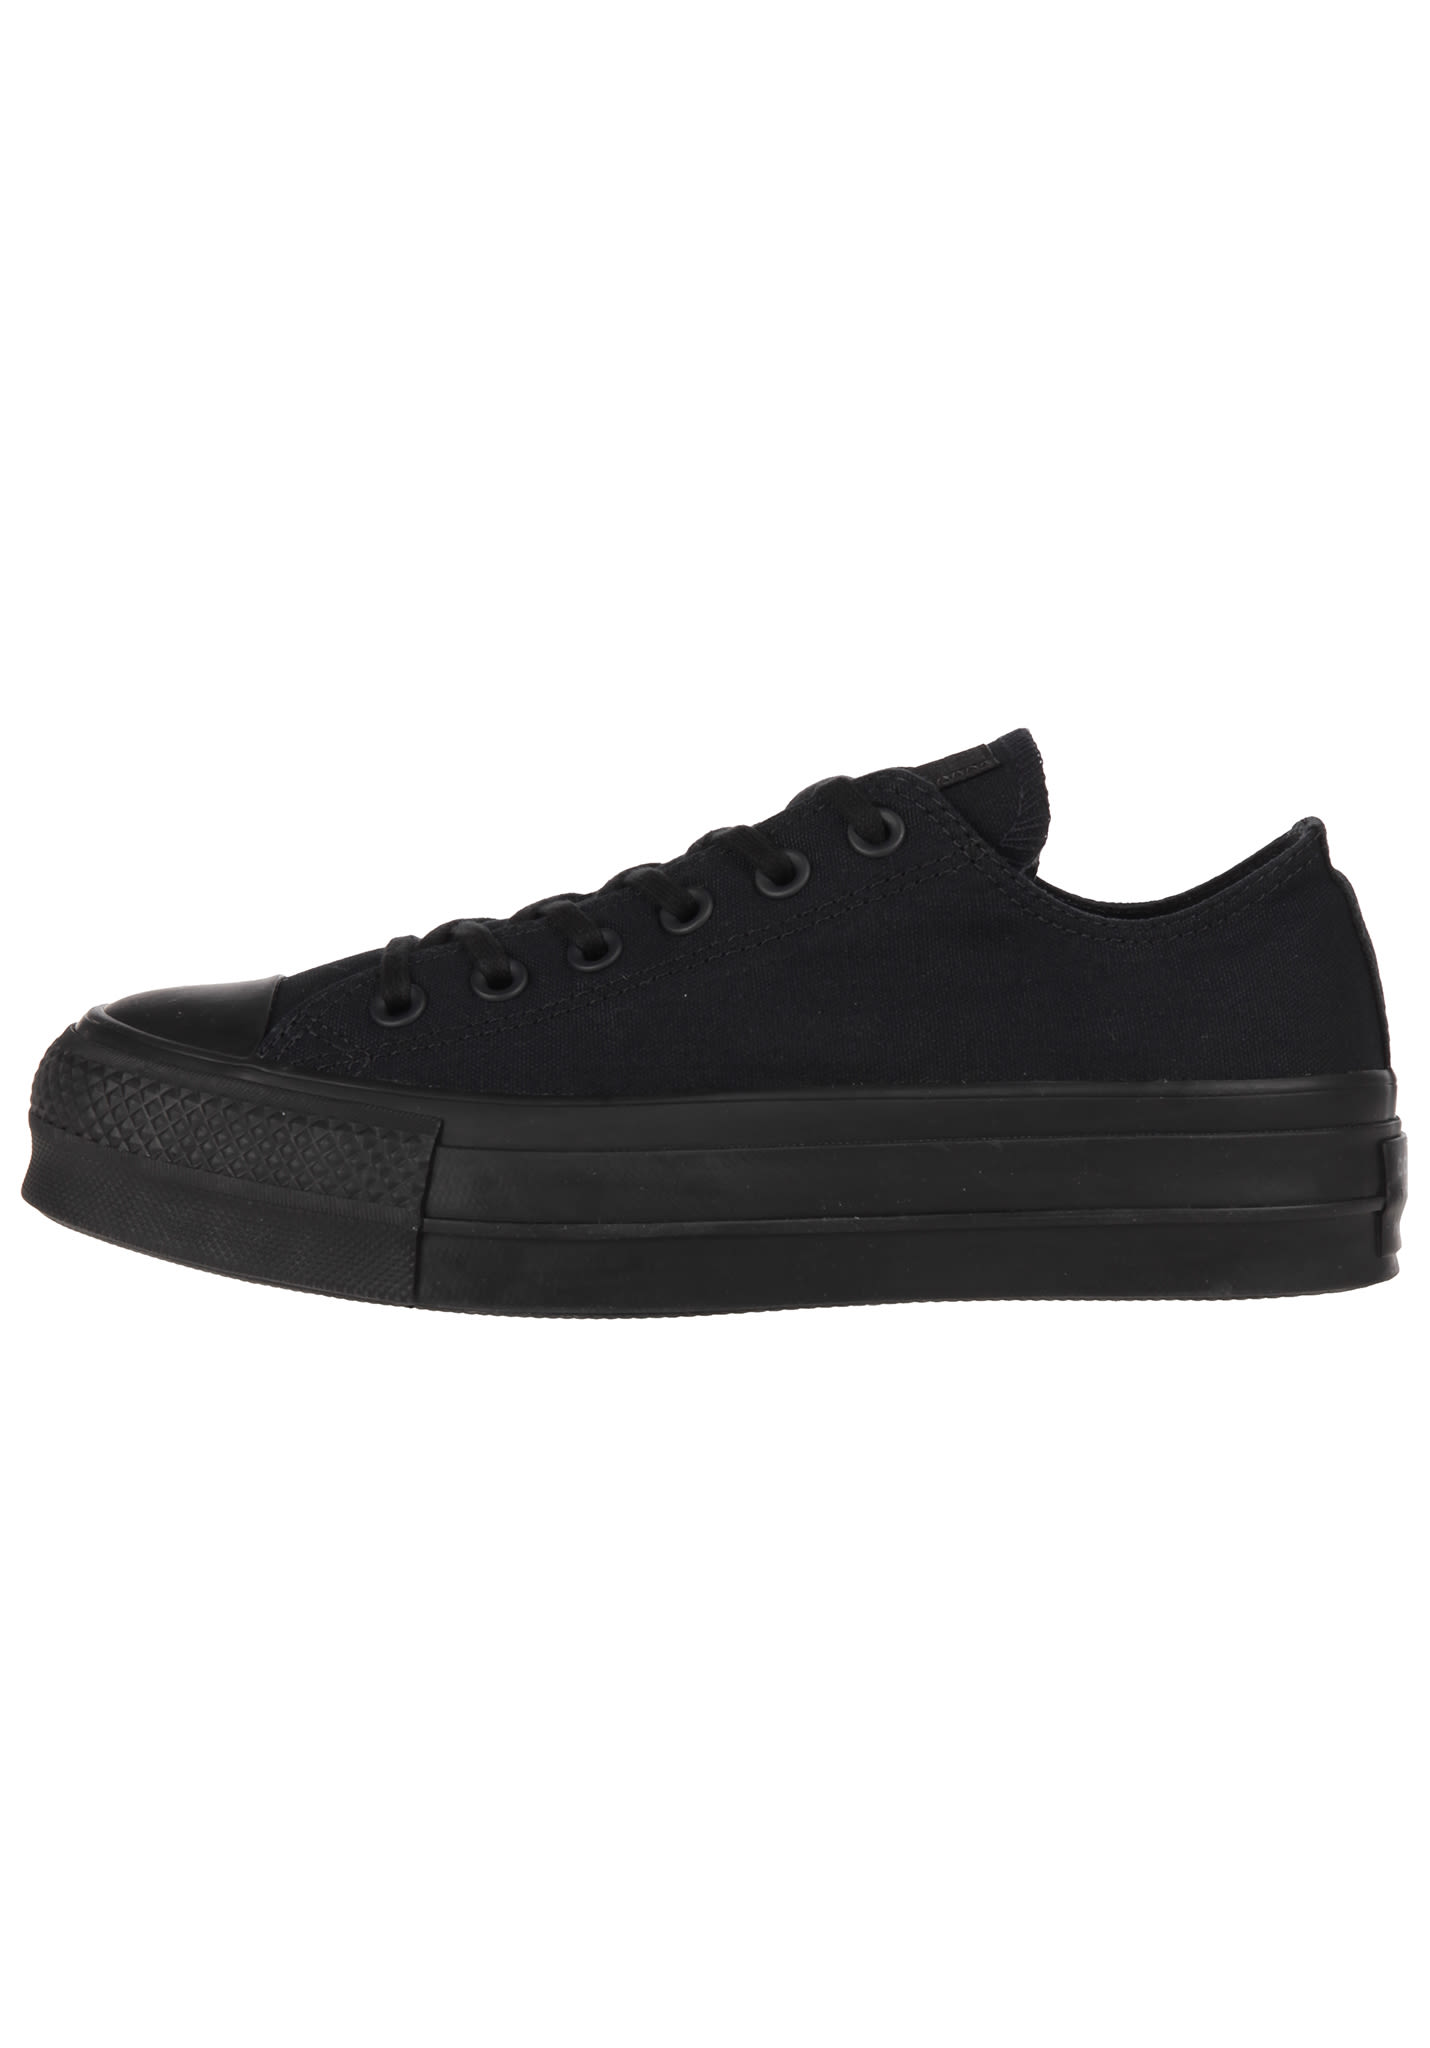 4c32f585a162 Converse Chuck Taylor All Star Clean Lift Ox - Sneakers for Women - Black -  Planet Sports